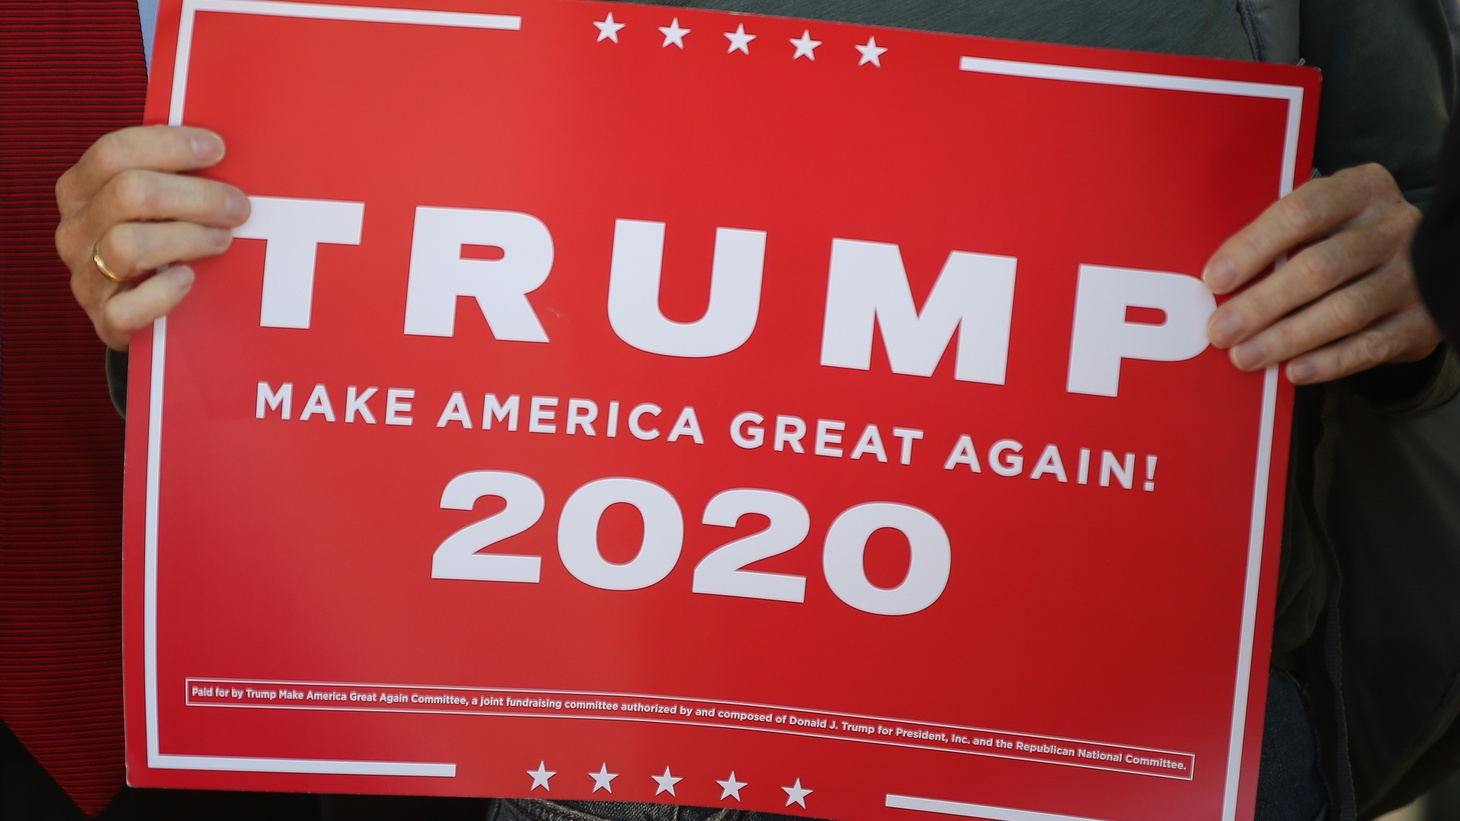 A placard is on display during a rally supporting US President Donald Trump outside the Republican National Committee building. Trump's campaign office claims numerous cases of election fraud in a number of states. November 6, 2020, Washington D.C., United States.